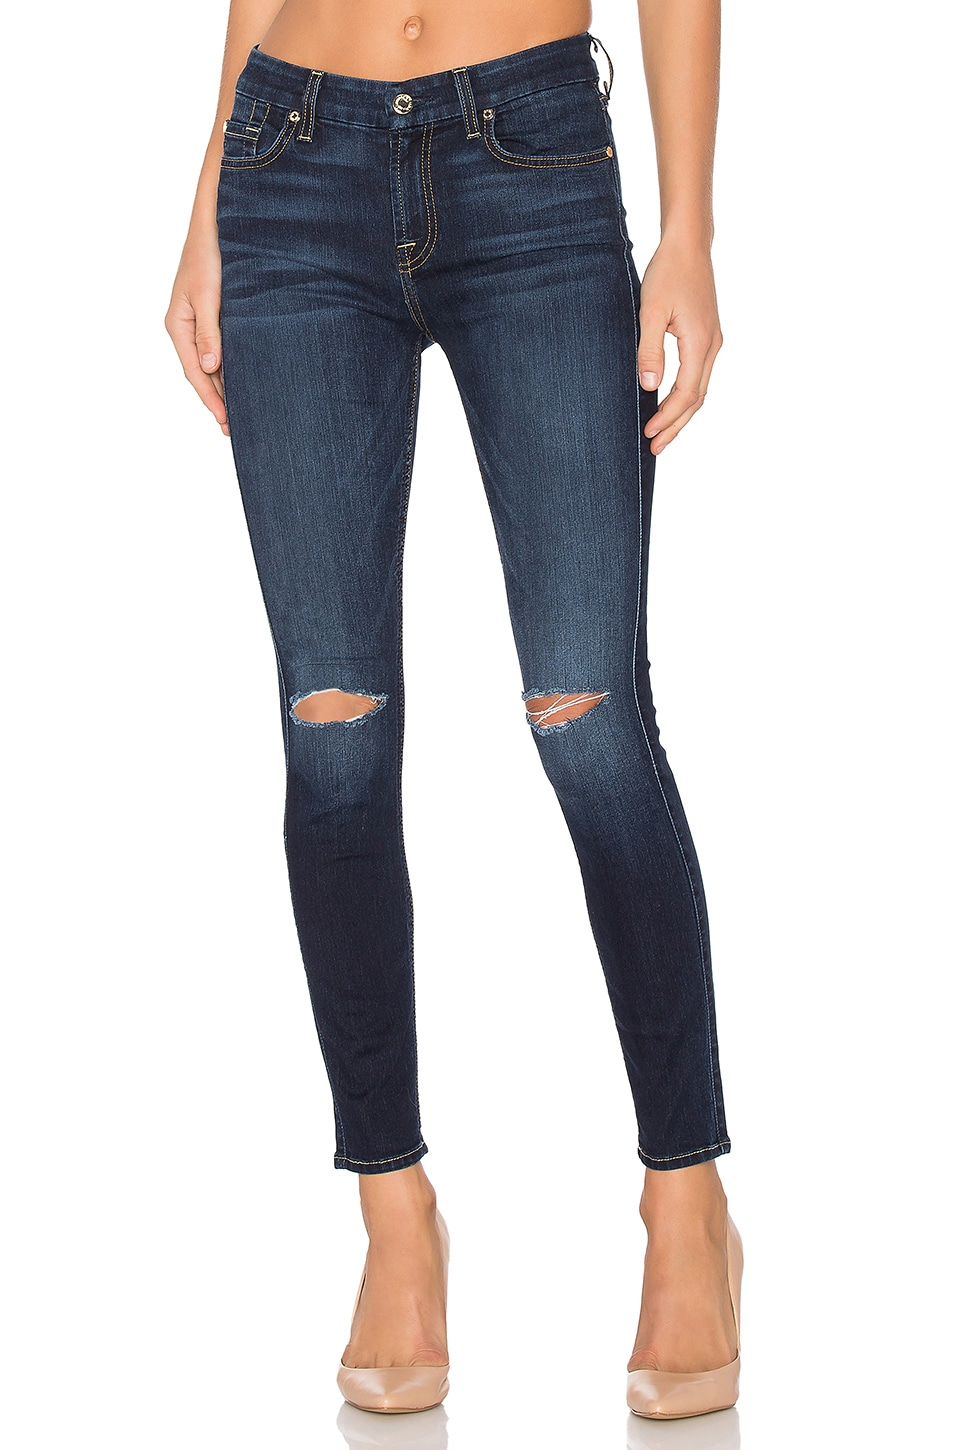 7 For All Mankind The Knee Slit Ankle Skinny in Dark Canterbury 2